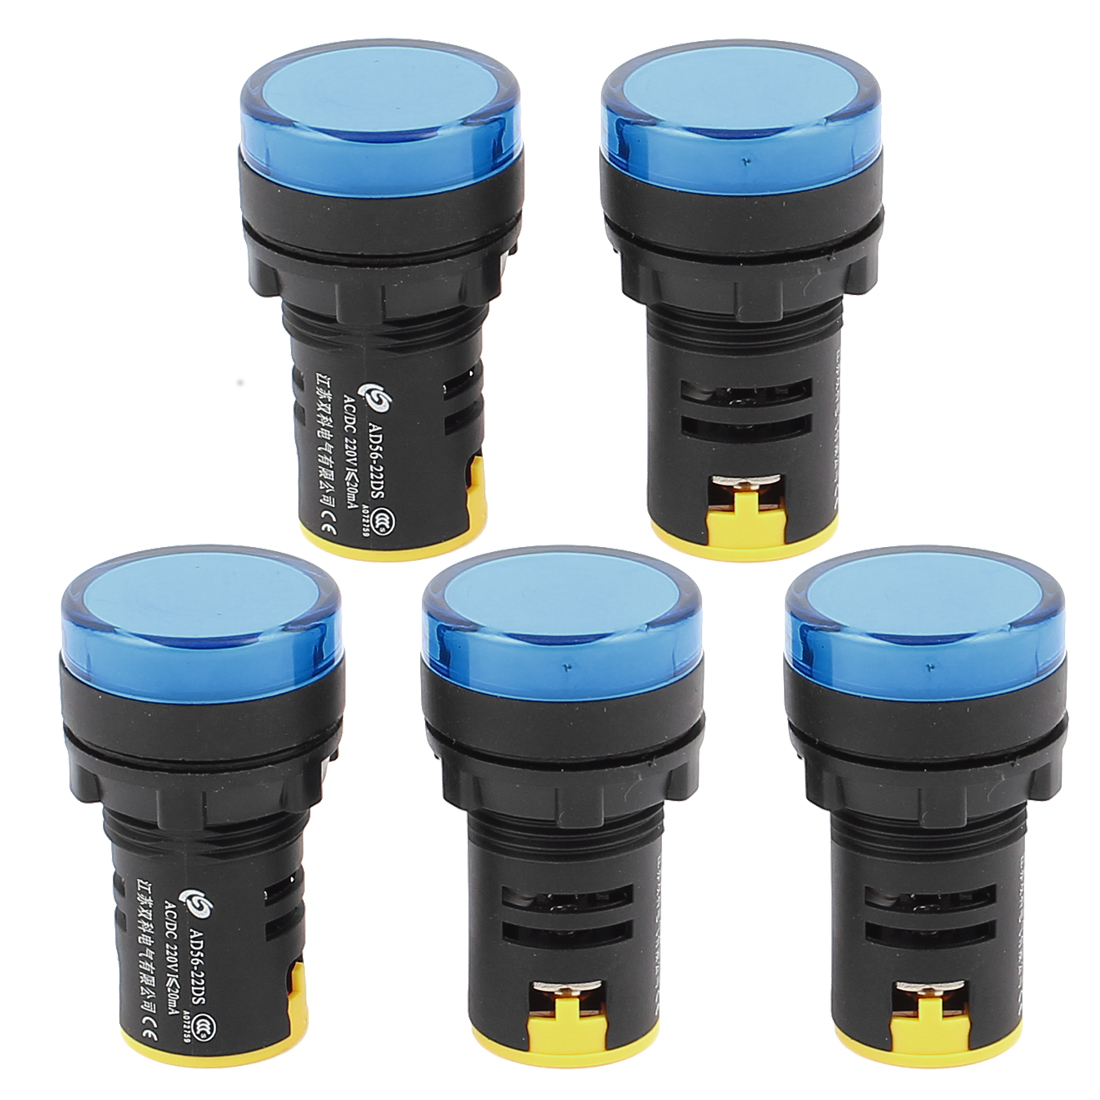 5Pcs AC/DC 220V Energy Saving Blue LED Indicator Pilot Signal Light